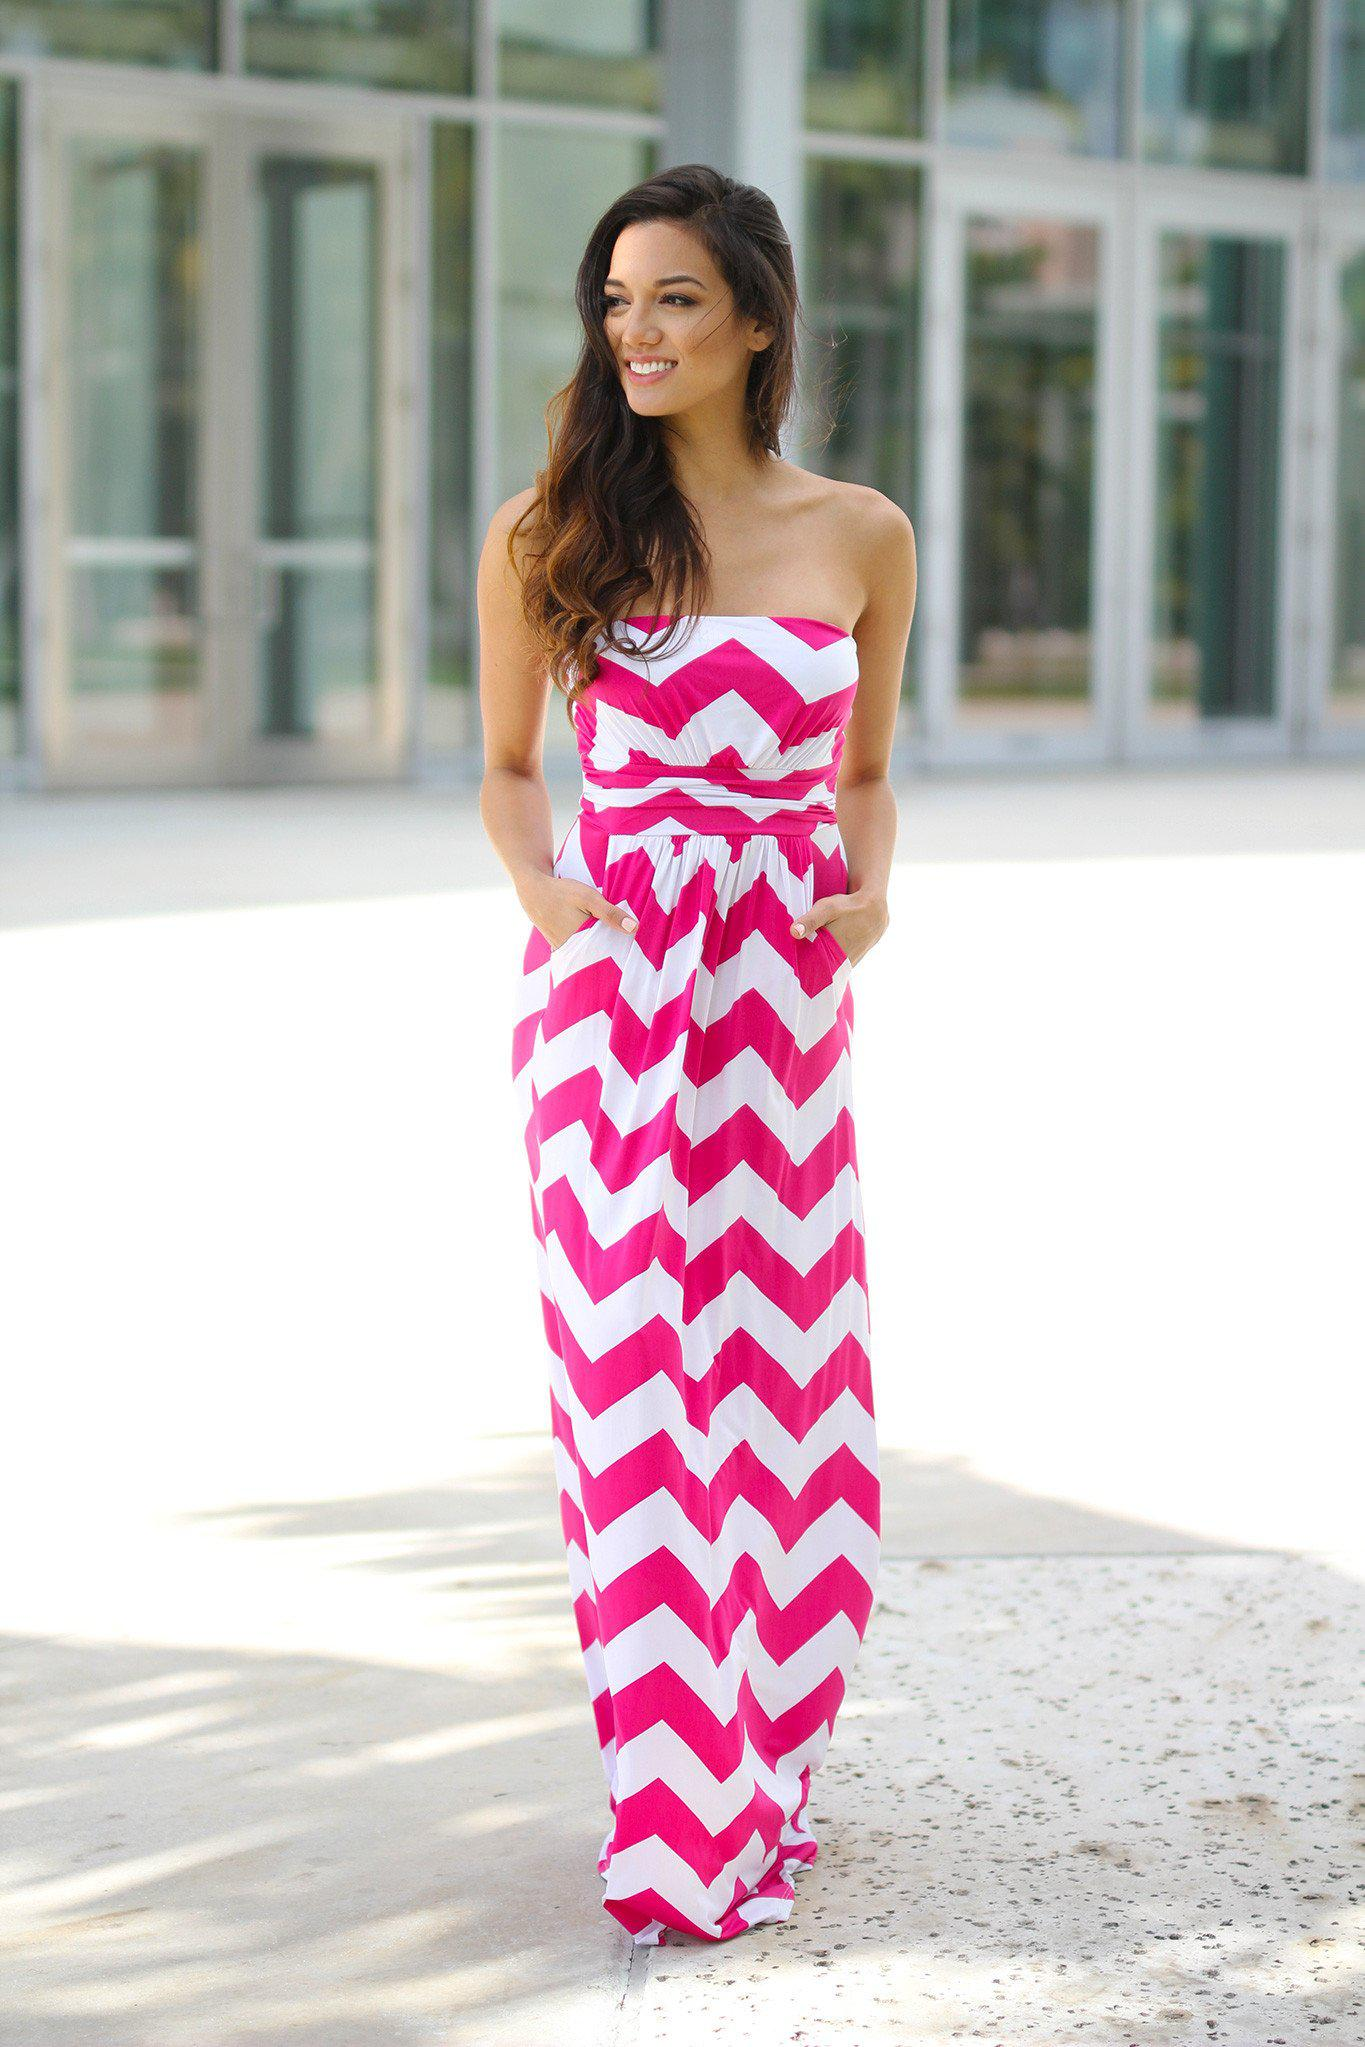 eb6abb06c3 Pink and White Chevron Maxi Dress with Pockets – Saved by the Dress